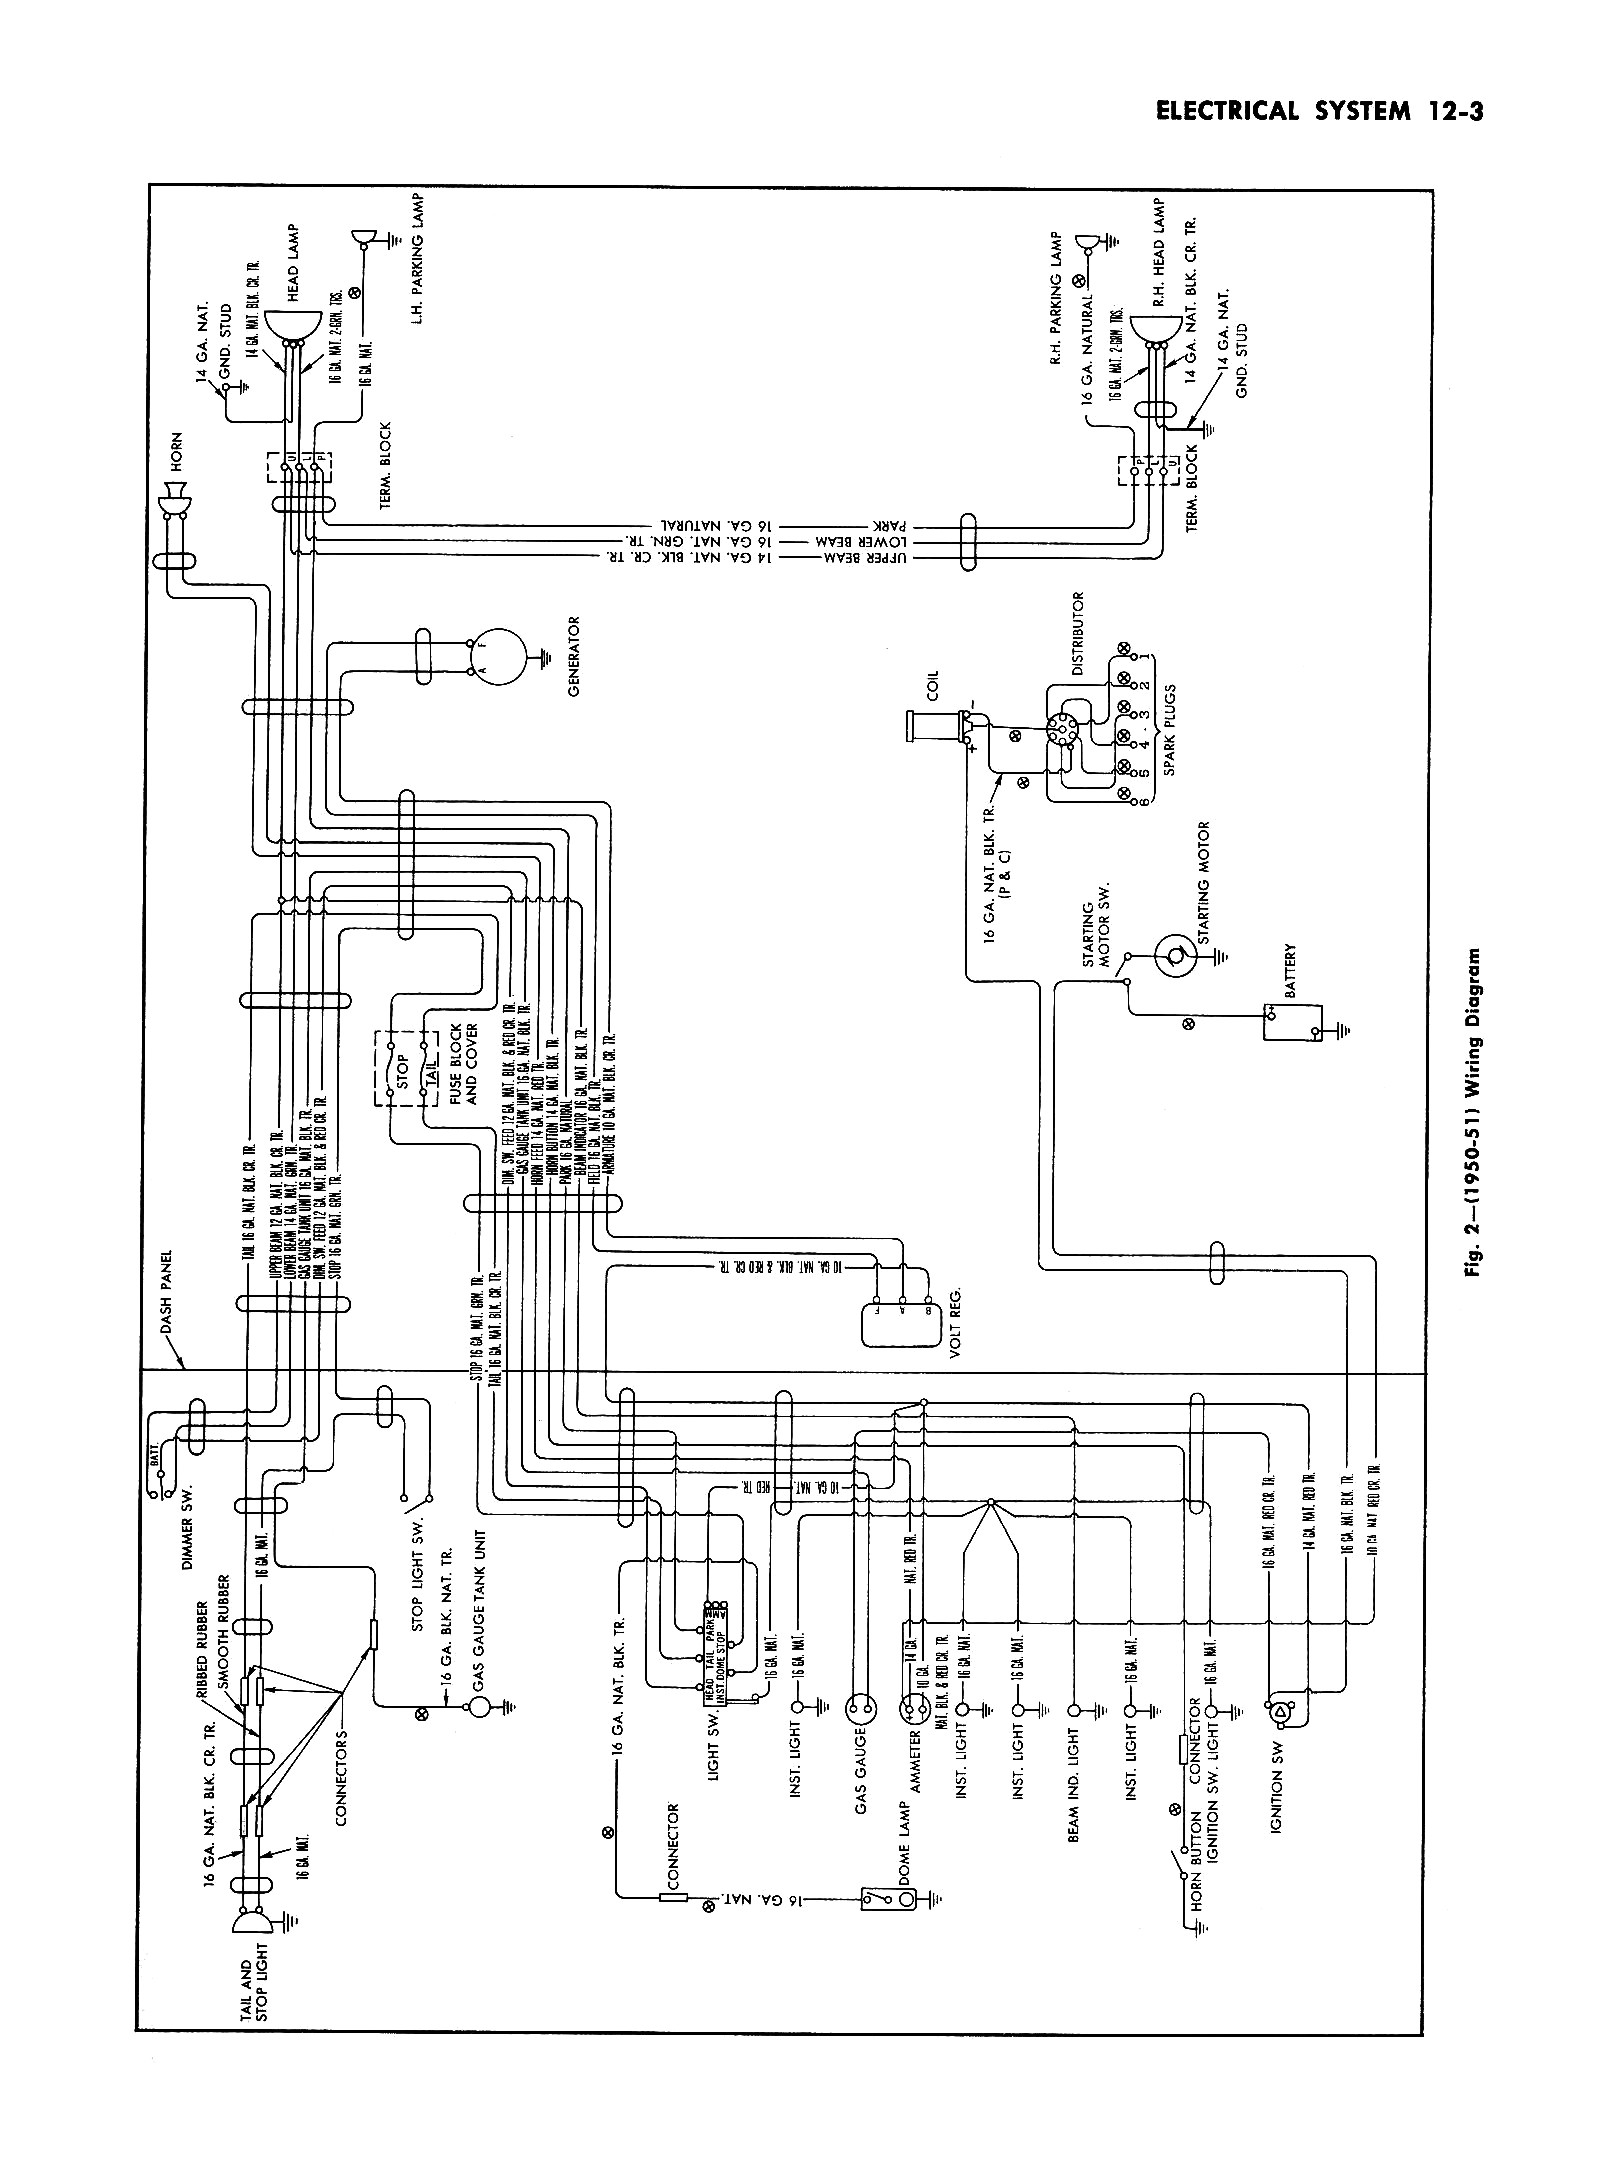 chevy wiring diagrams 1951 Chevy Truck Wiring Diagram 1950, 1950 car wiring � 1950 passenger car wiring